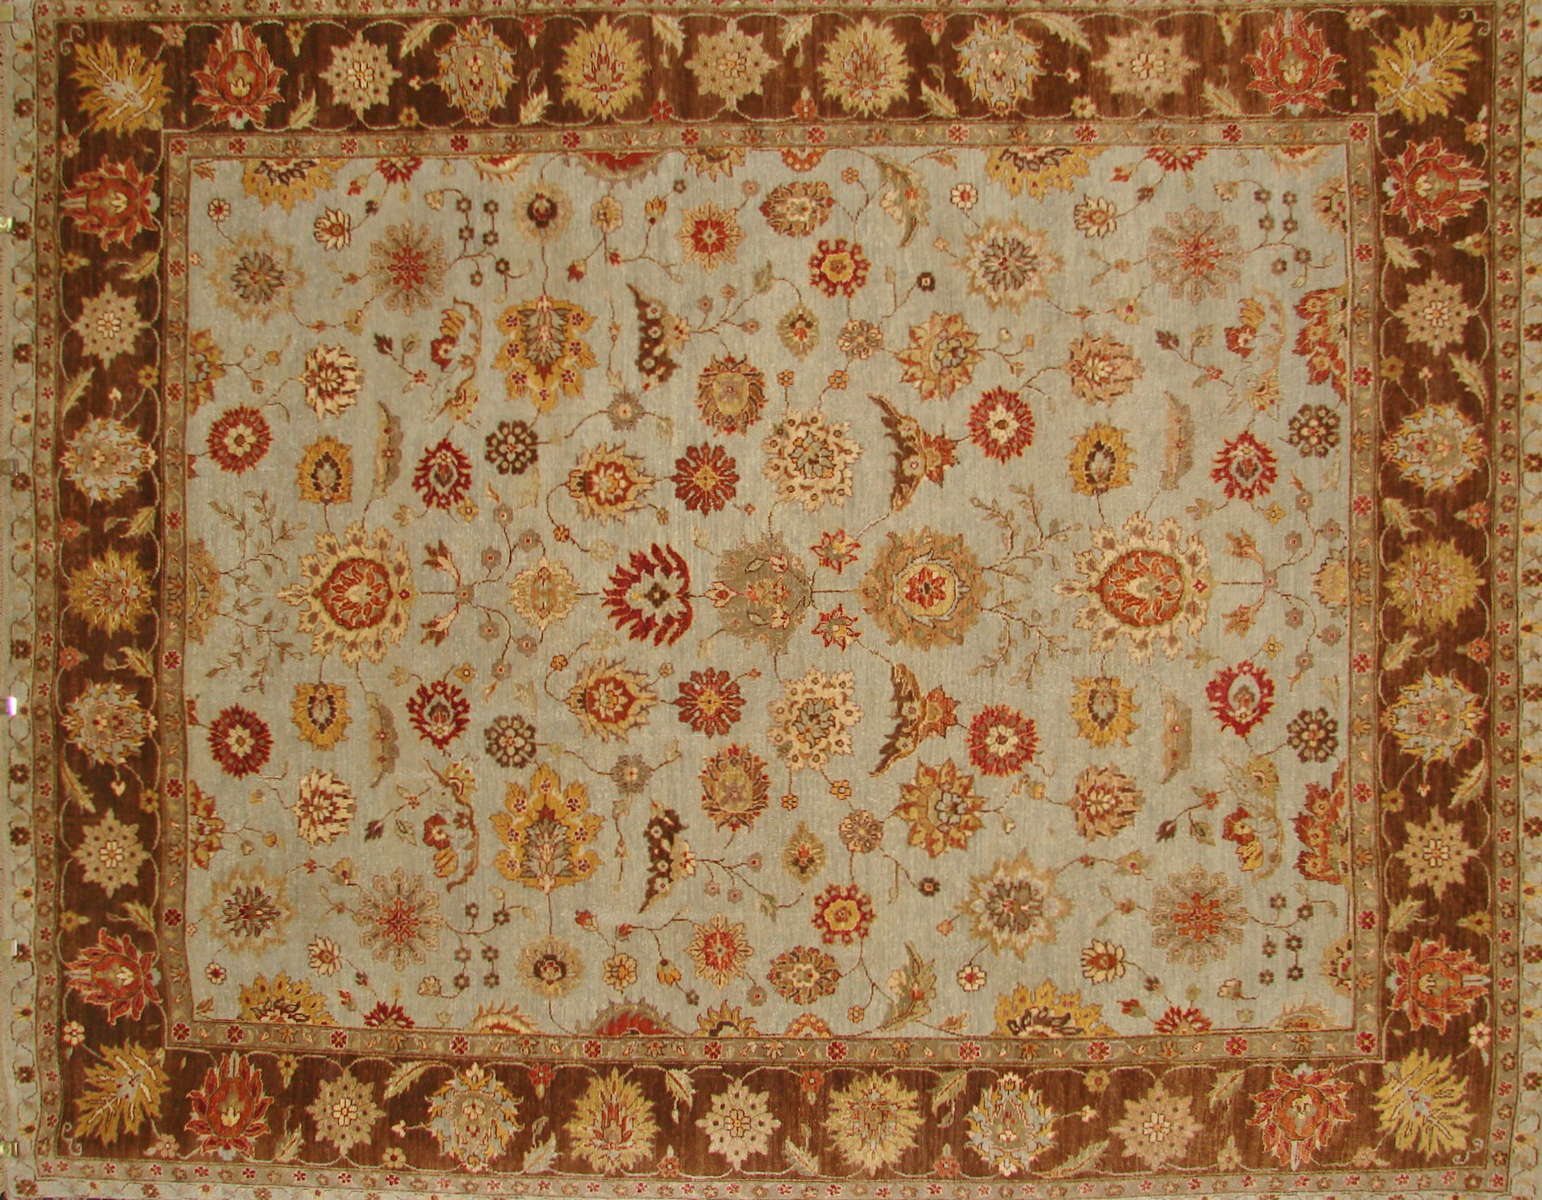 8x10 Traditional Hand Knotted Wool Area Rug - MR15365